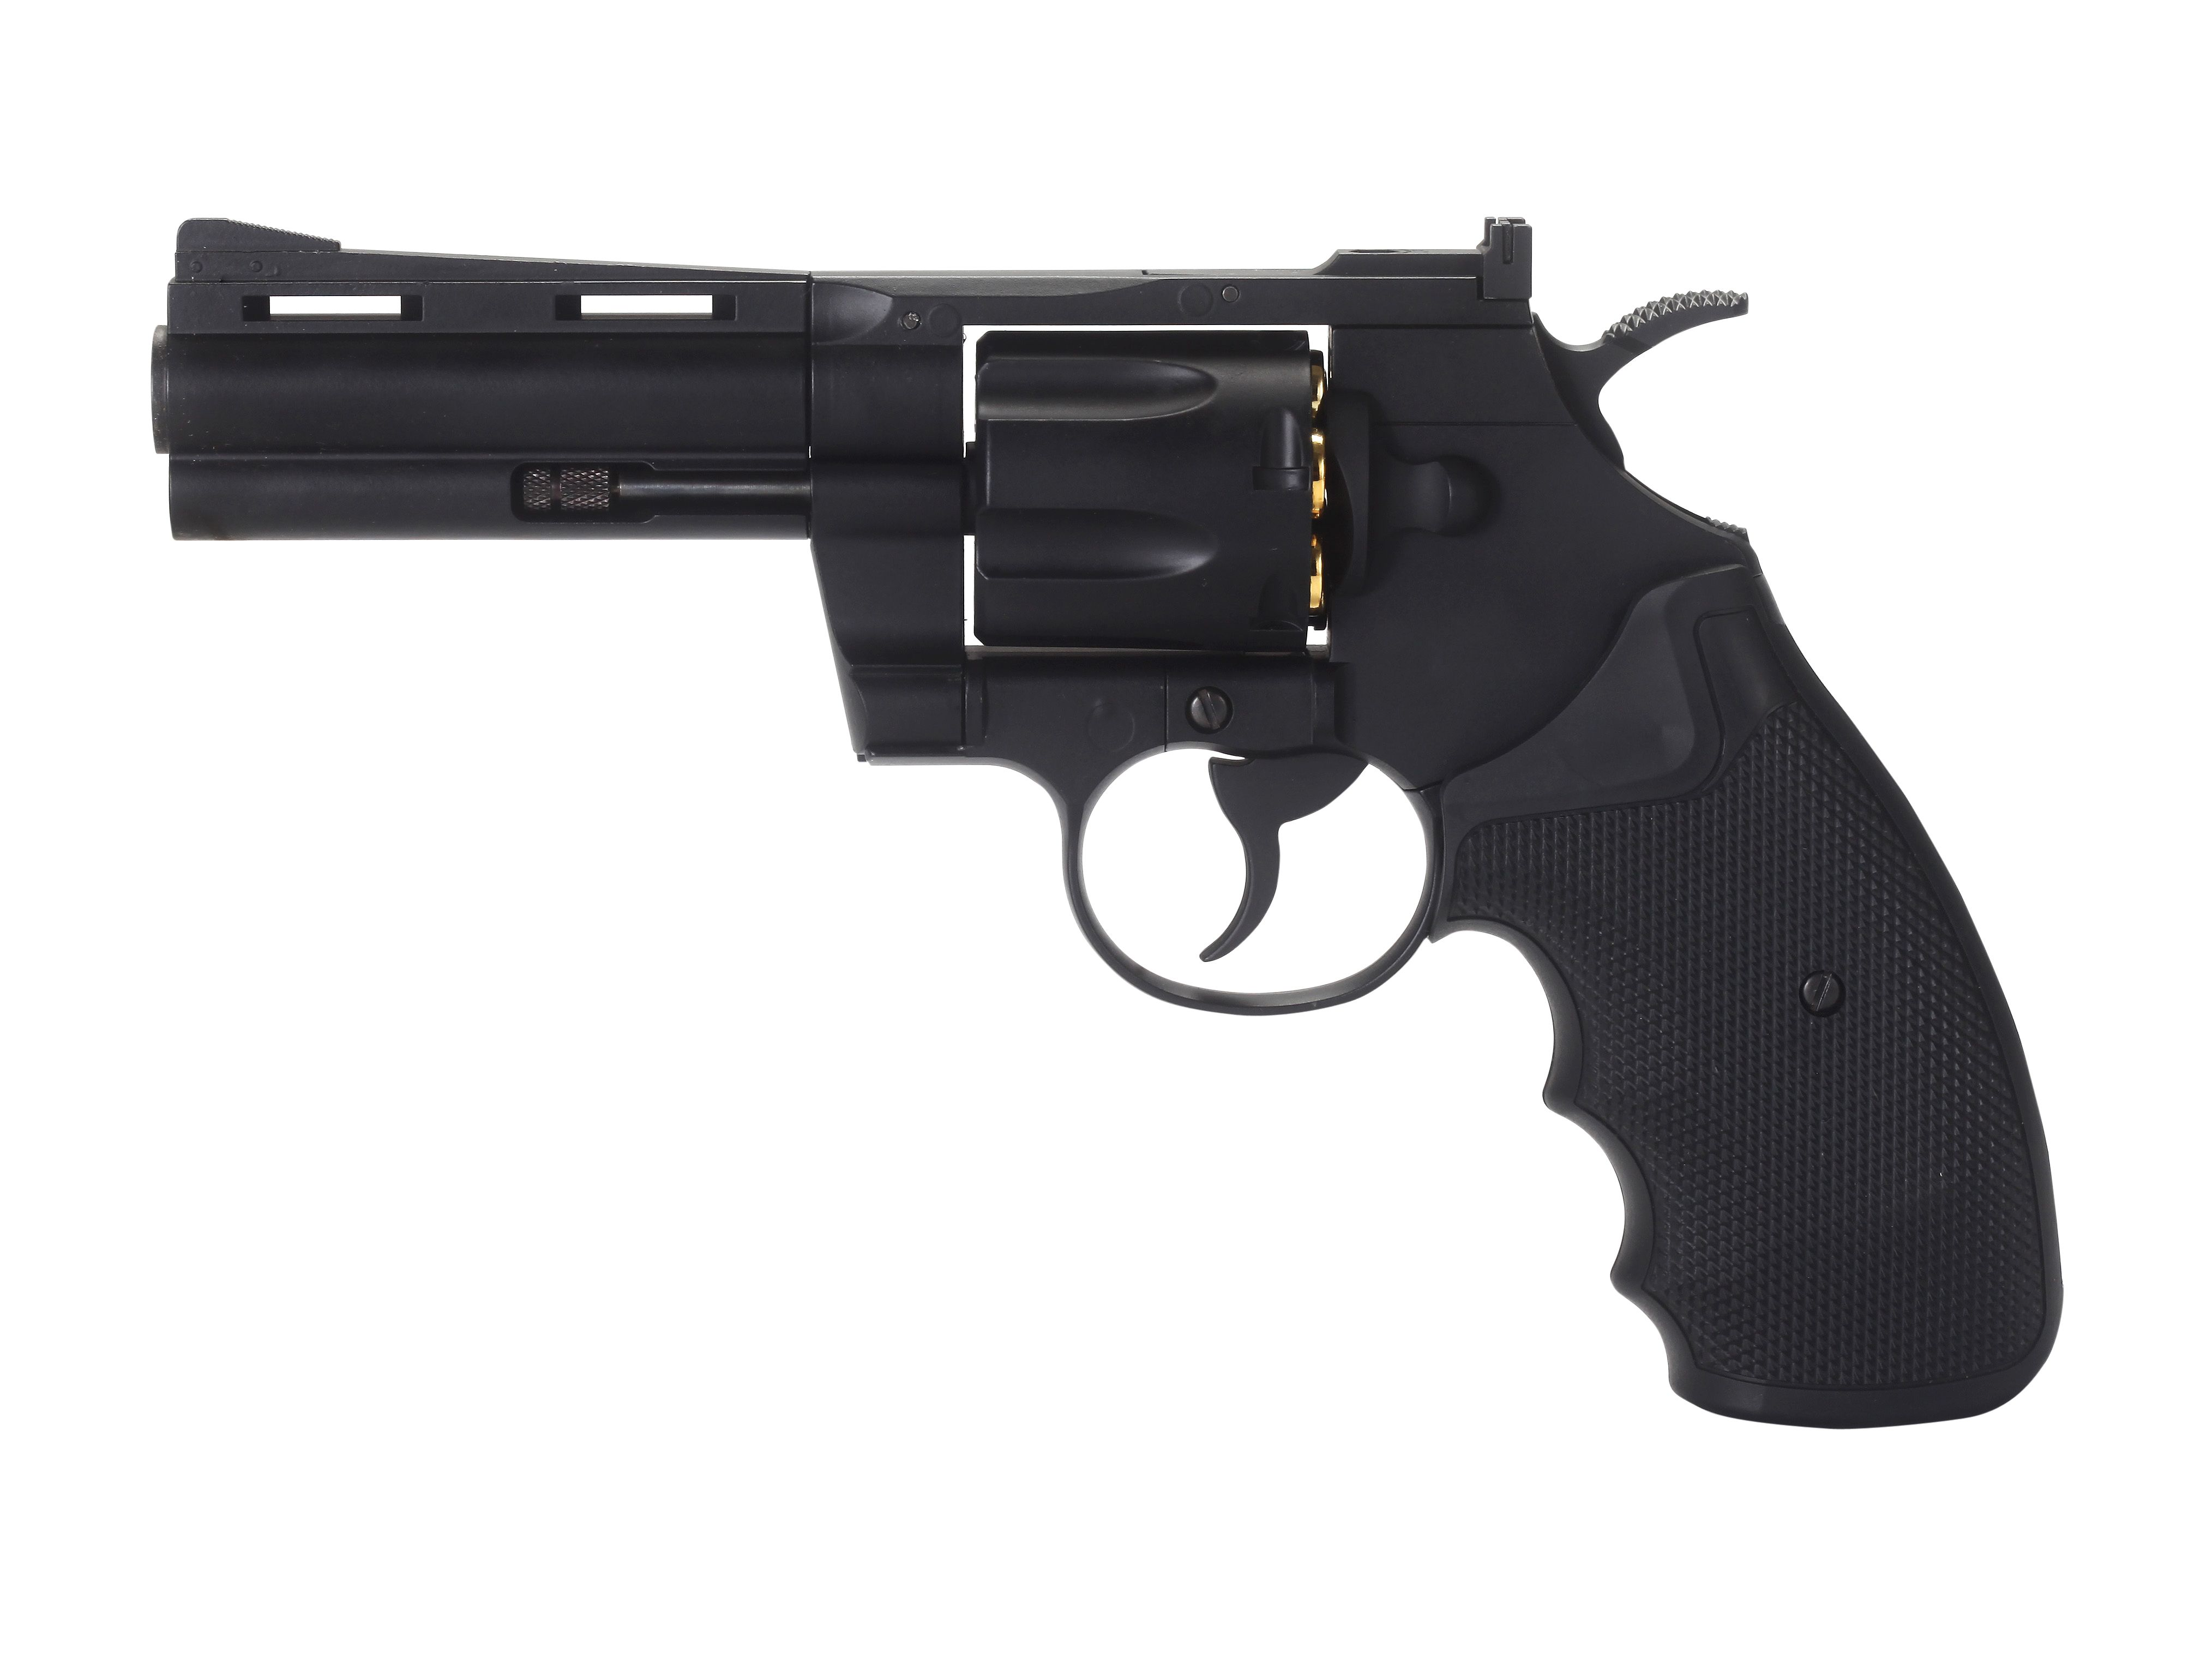 "REVOLVER FULL METAL CO2 4.5 4""KM-67DN"